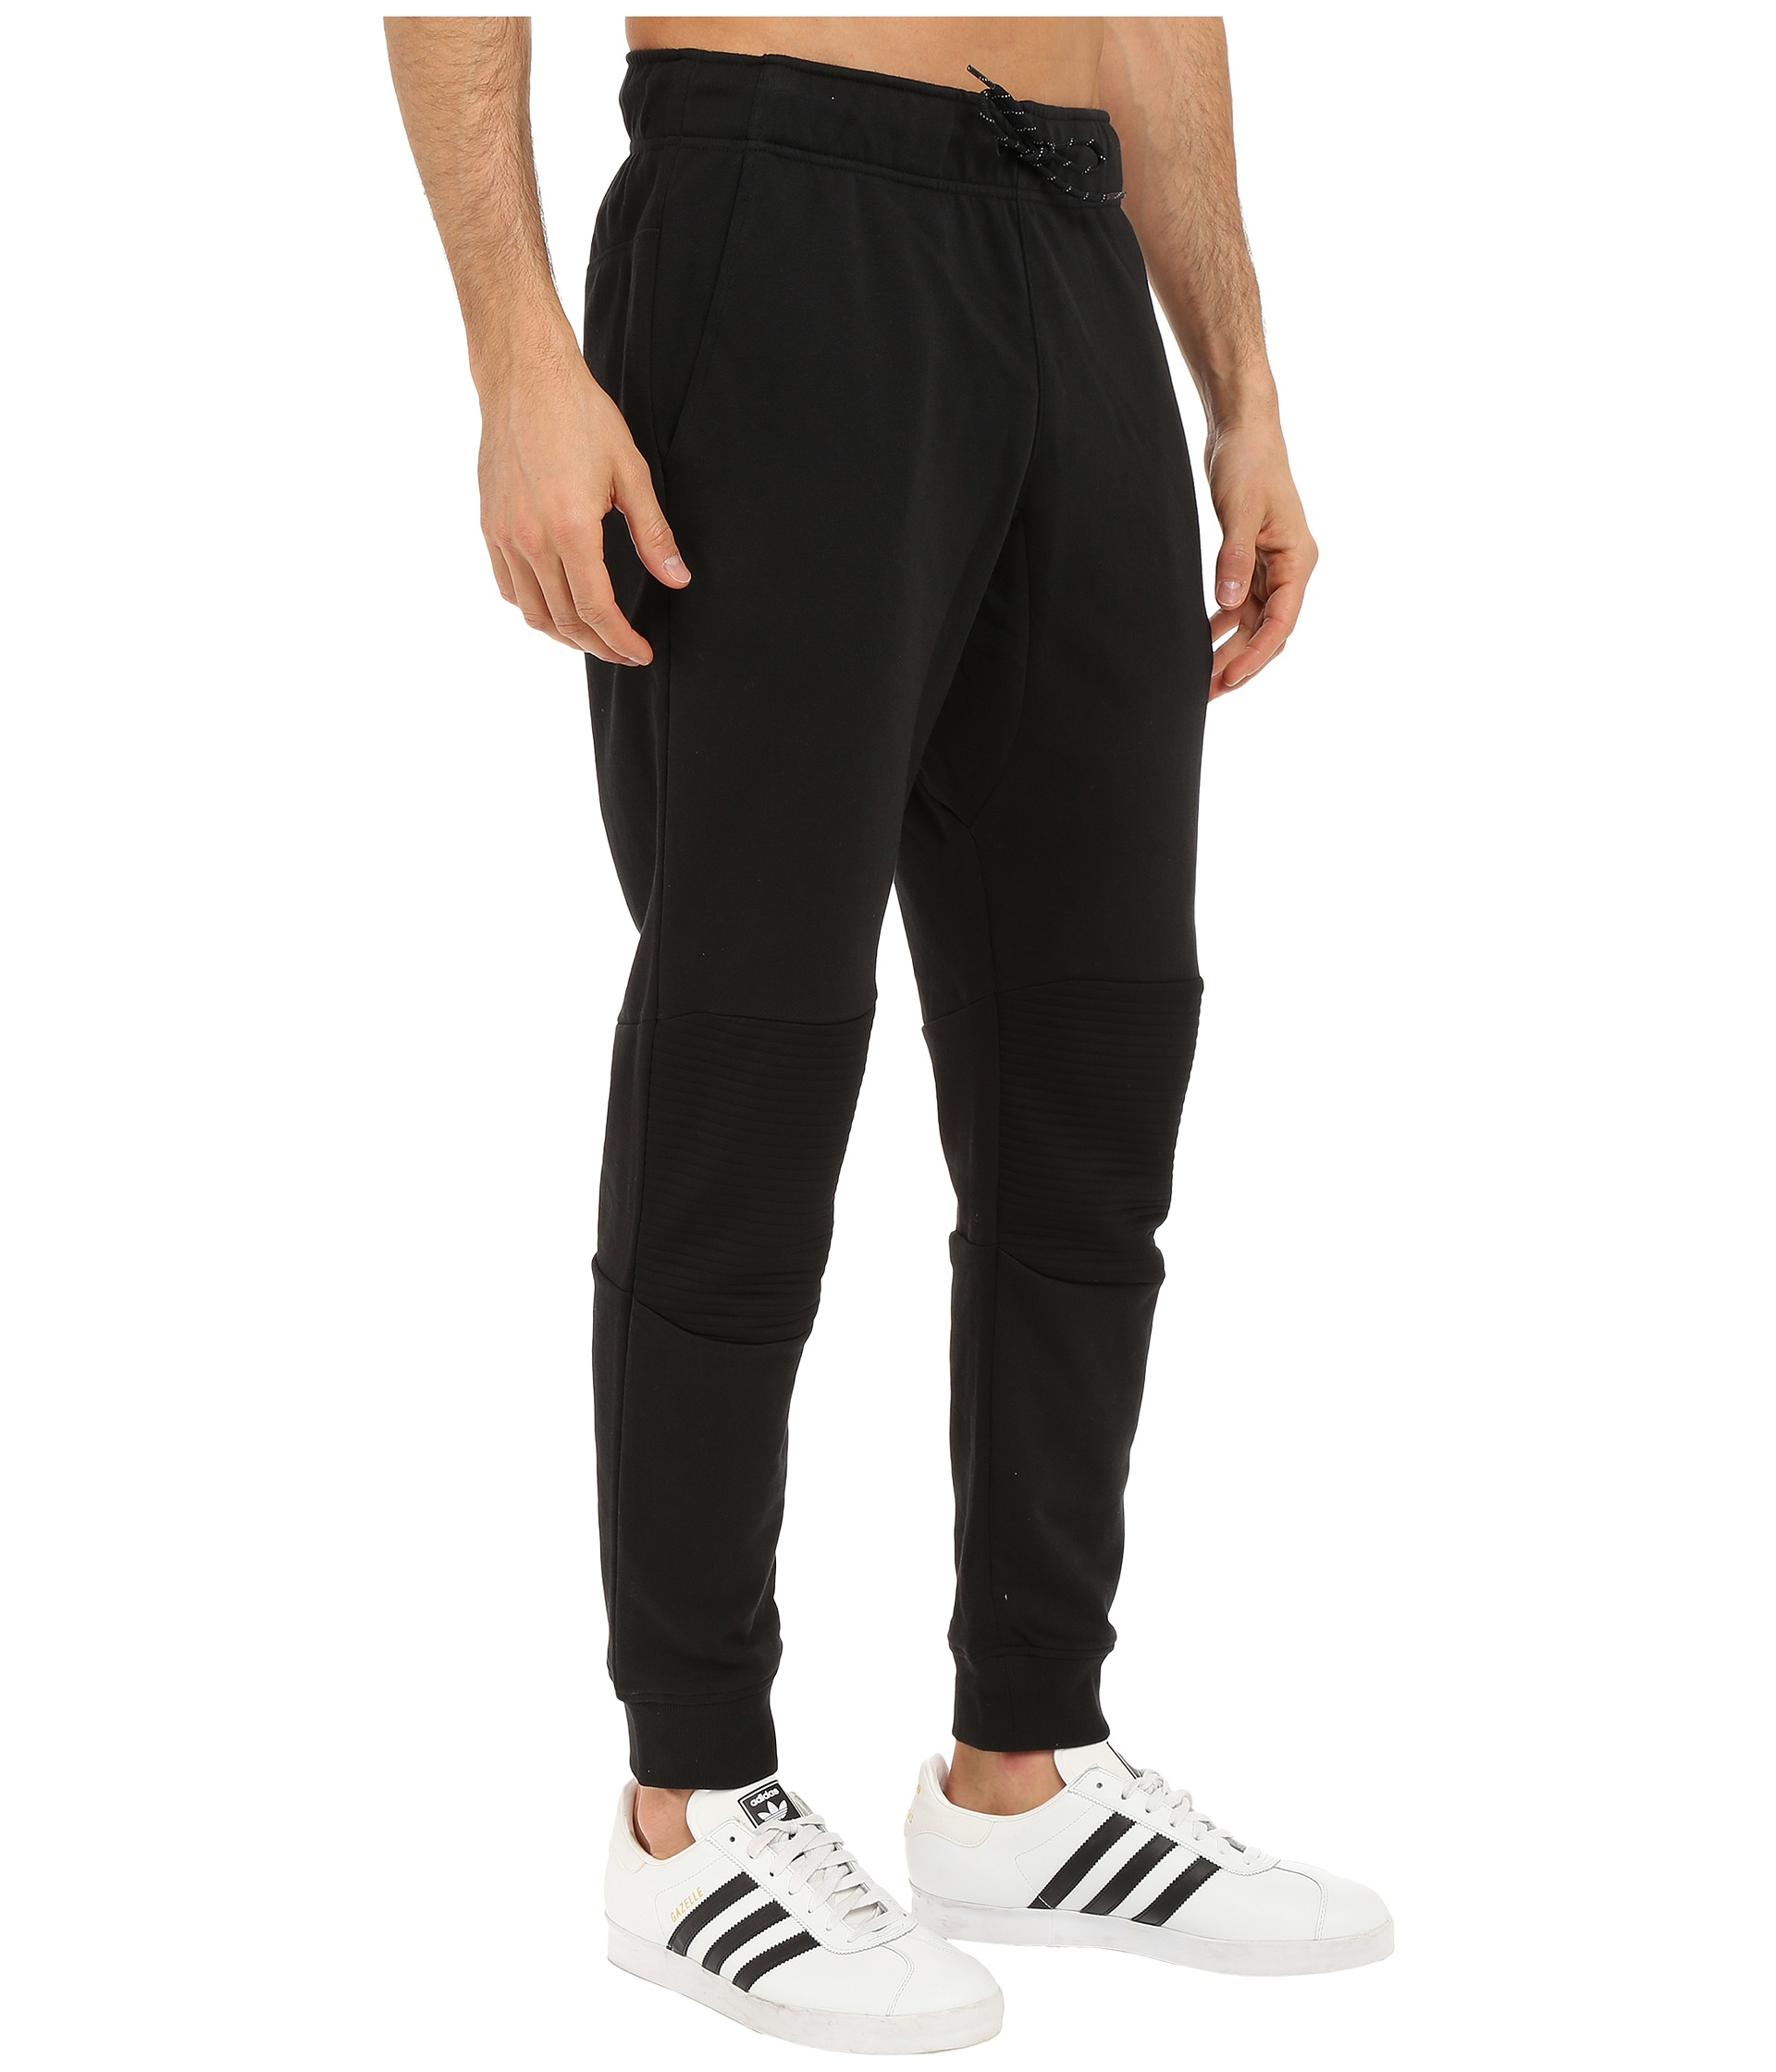 d02d0b4f3 adidas Originals Sport Luxe Moto Jogger Pants in Black for Men - Lyst